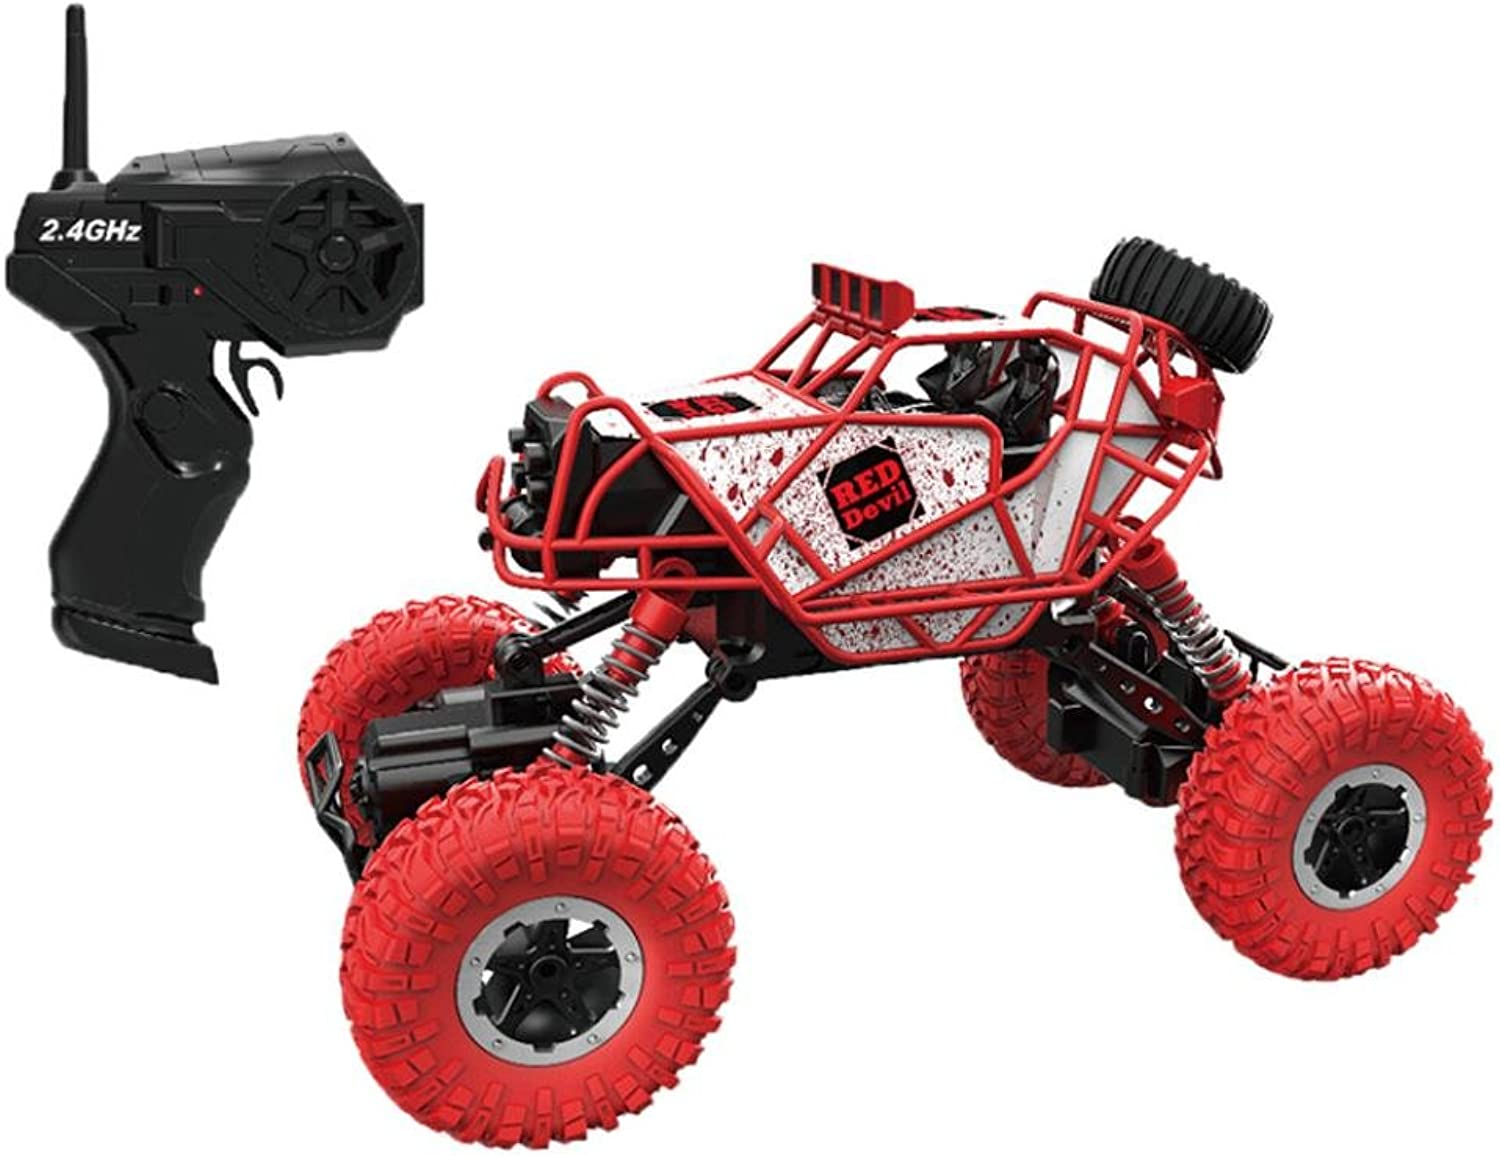 RC Cars 0ff Road,SolarLight 1 43 2.4Ghz USB Rechargeable High Speed Off Road Mini Remote Control Climbing Car (red)